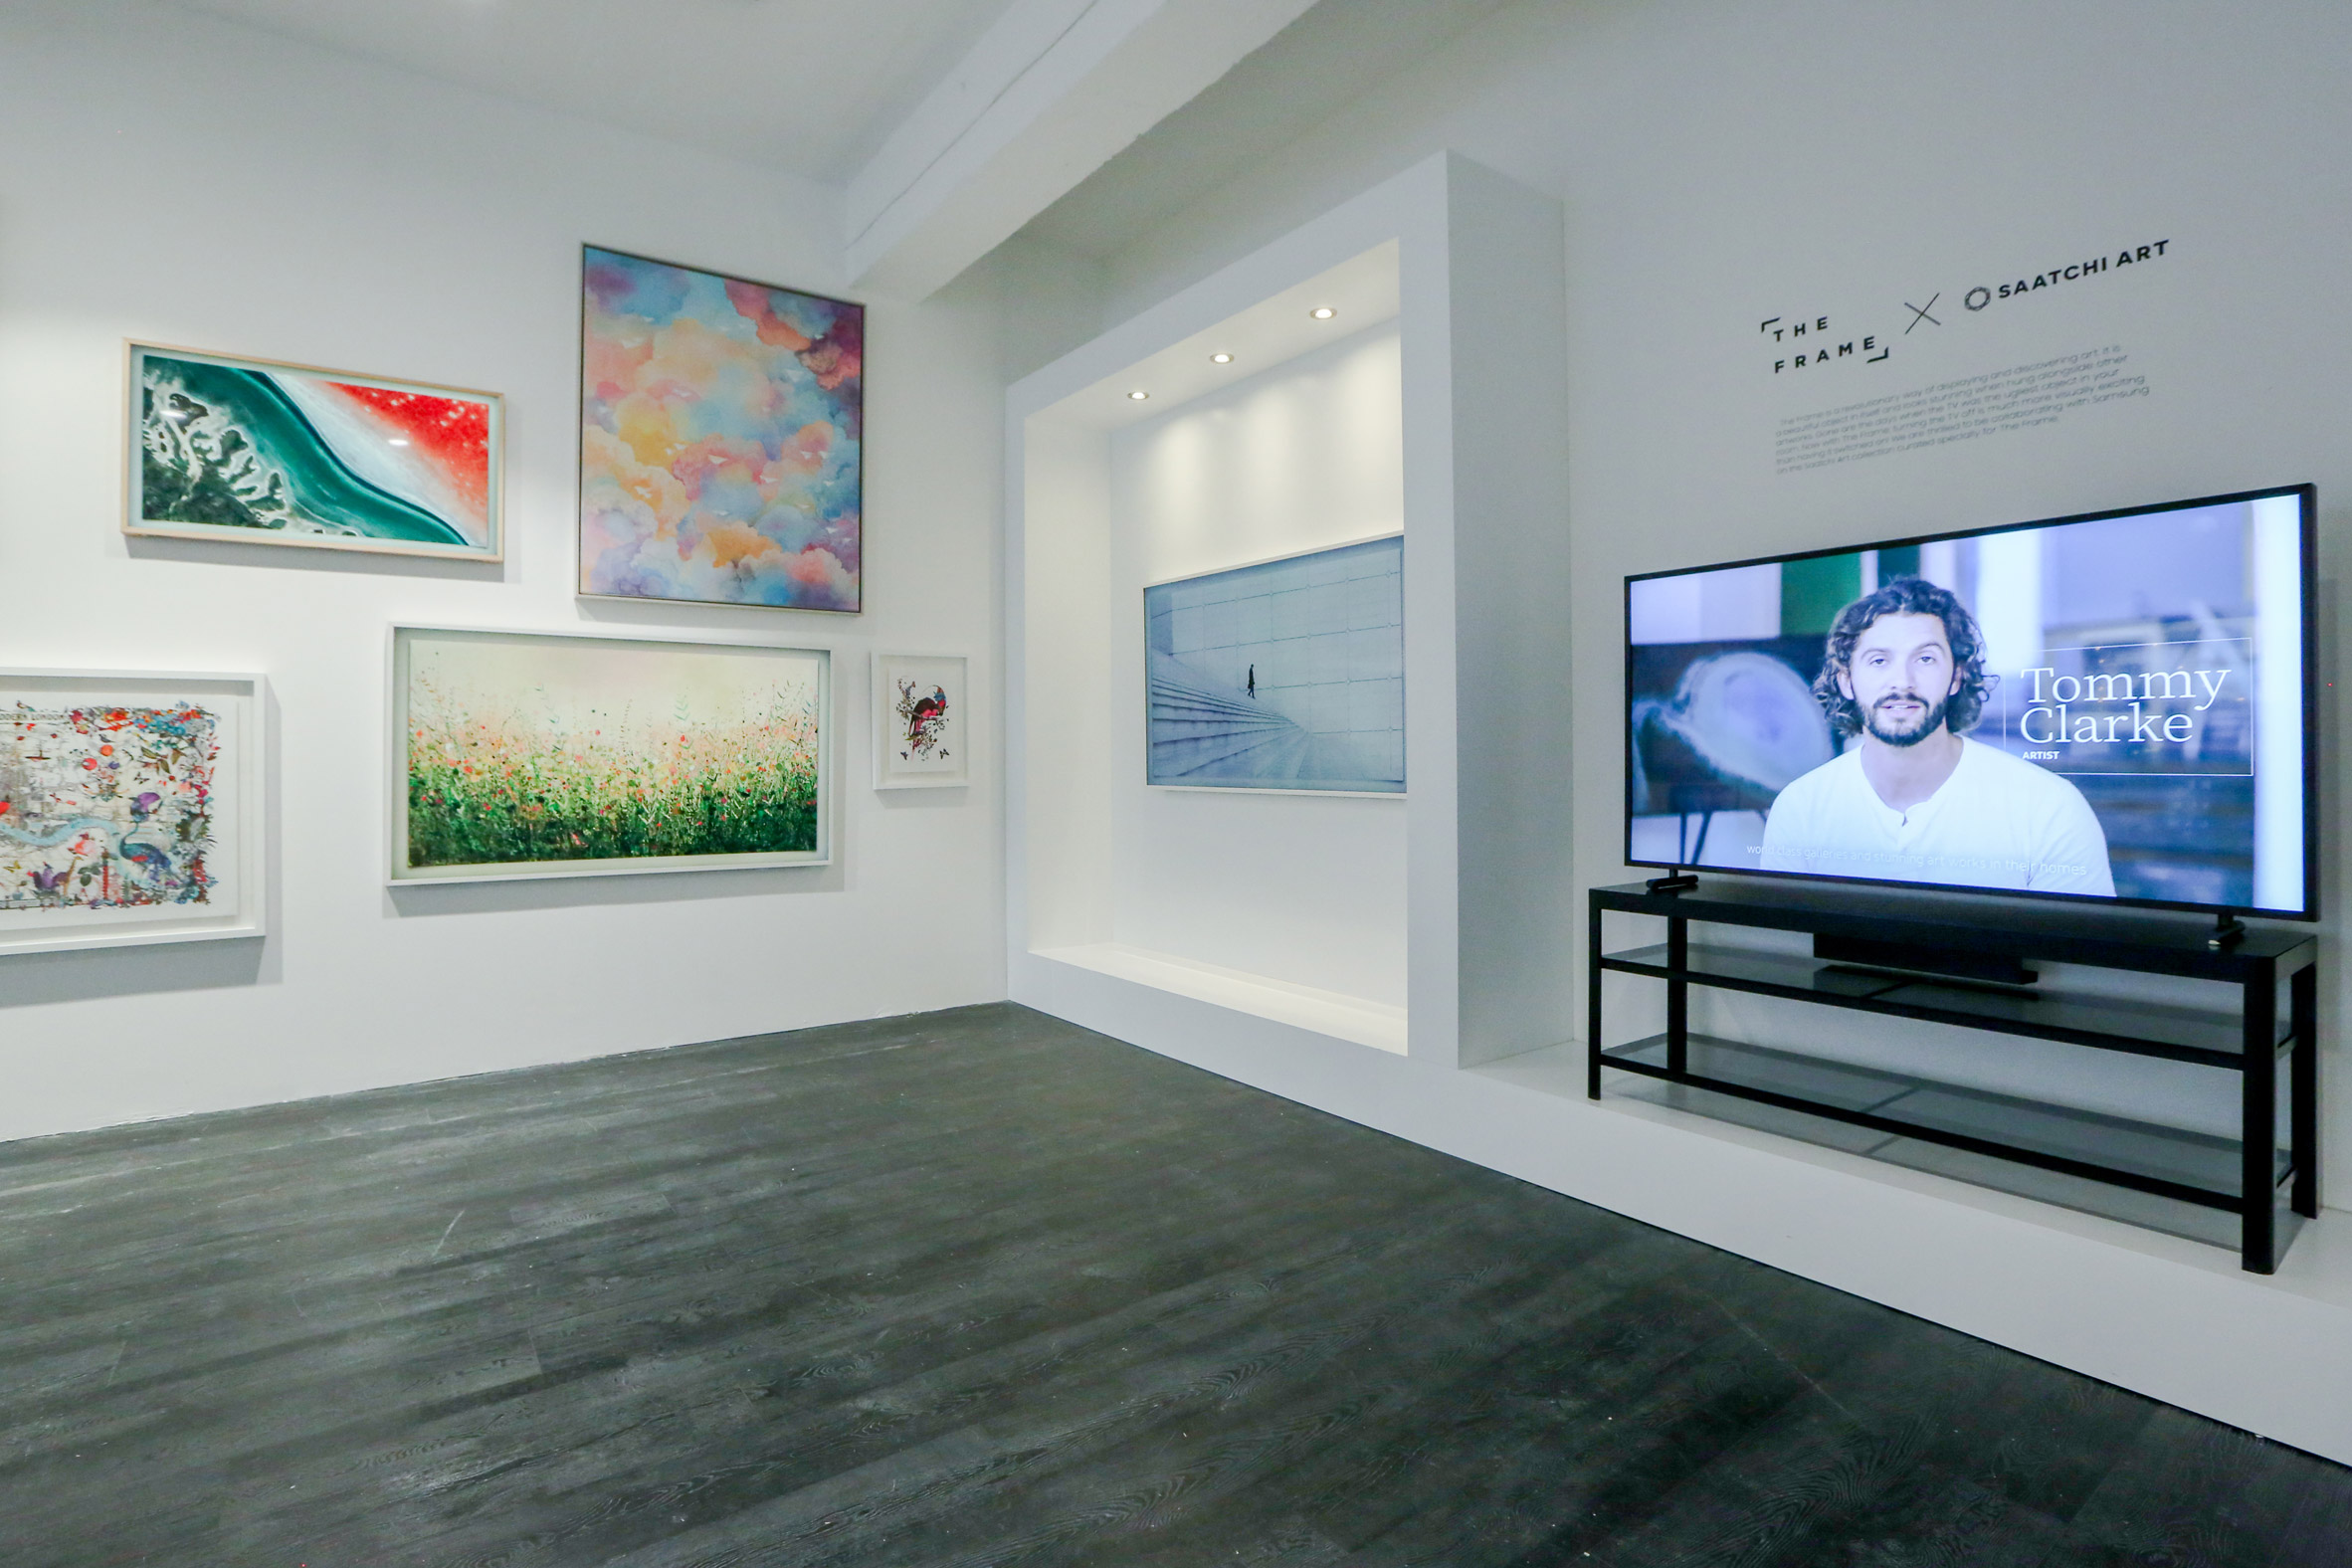 samsung s the frame television makes buying art as common. Black Bedroom Furniture Sets. Home Design Ideas